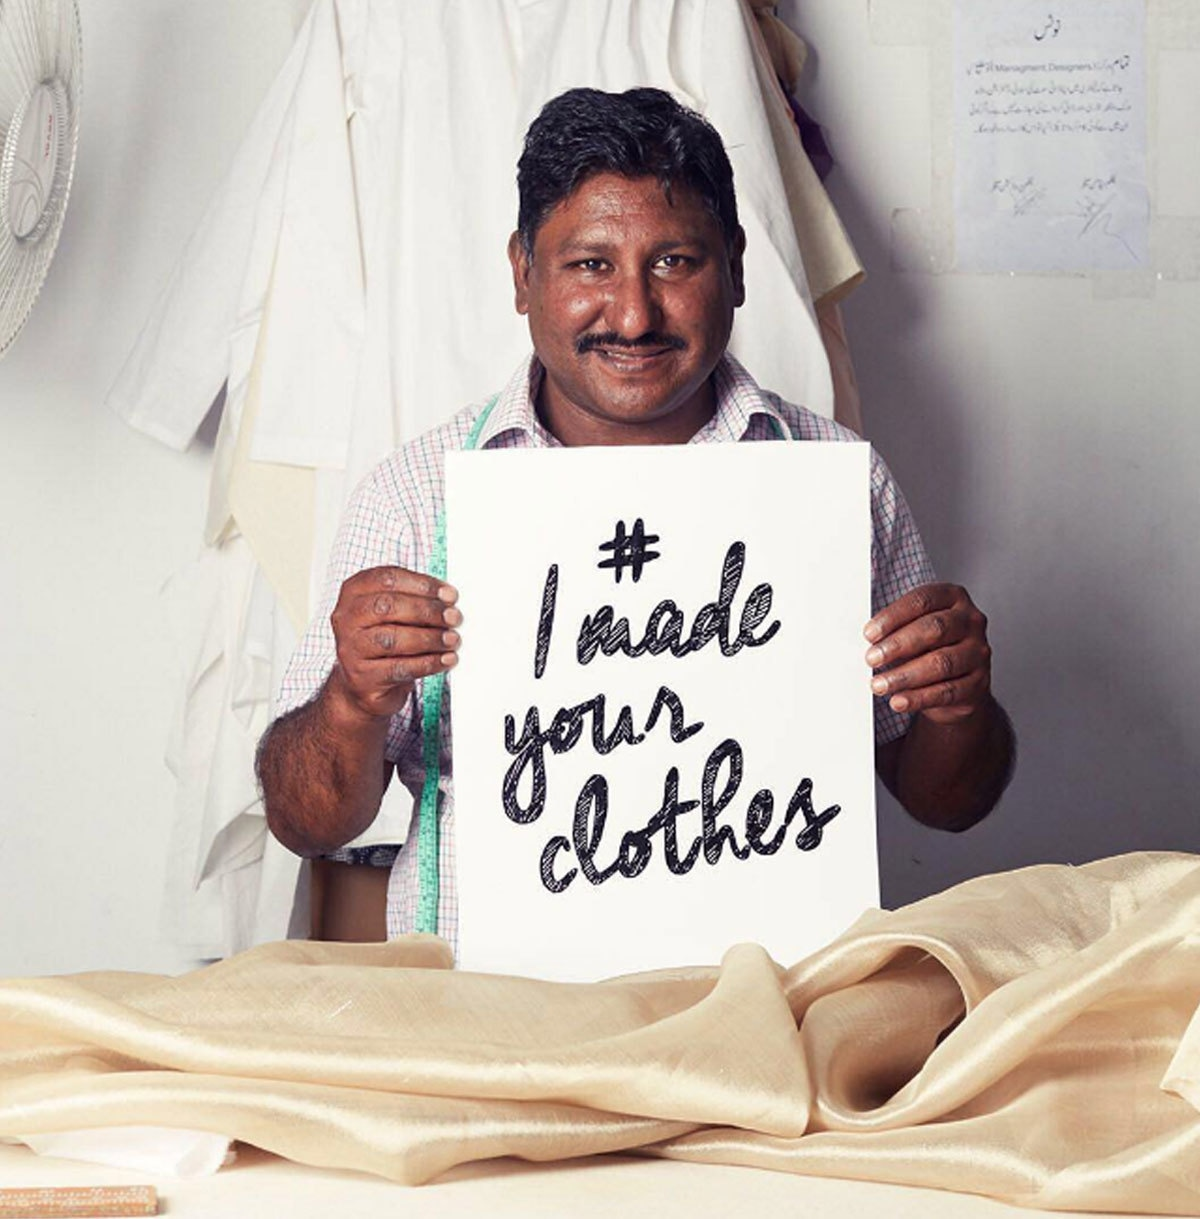 Meet Master Riaz - friendly, precise and extremely good at his work and yes he's the one who makes the patterns of your beautiful bridals. We honour all the people behind the scenes to make fashion possible. #imadeyourclothes #respect #love #fashion - Instagram